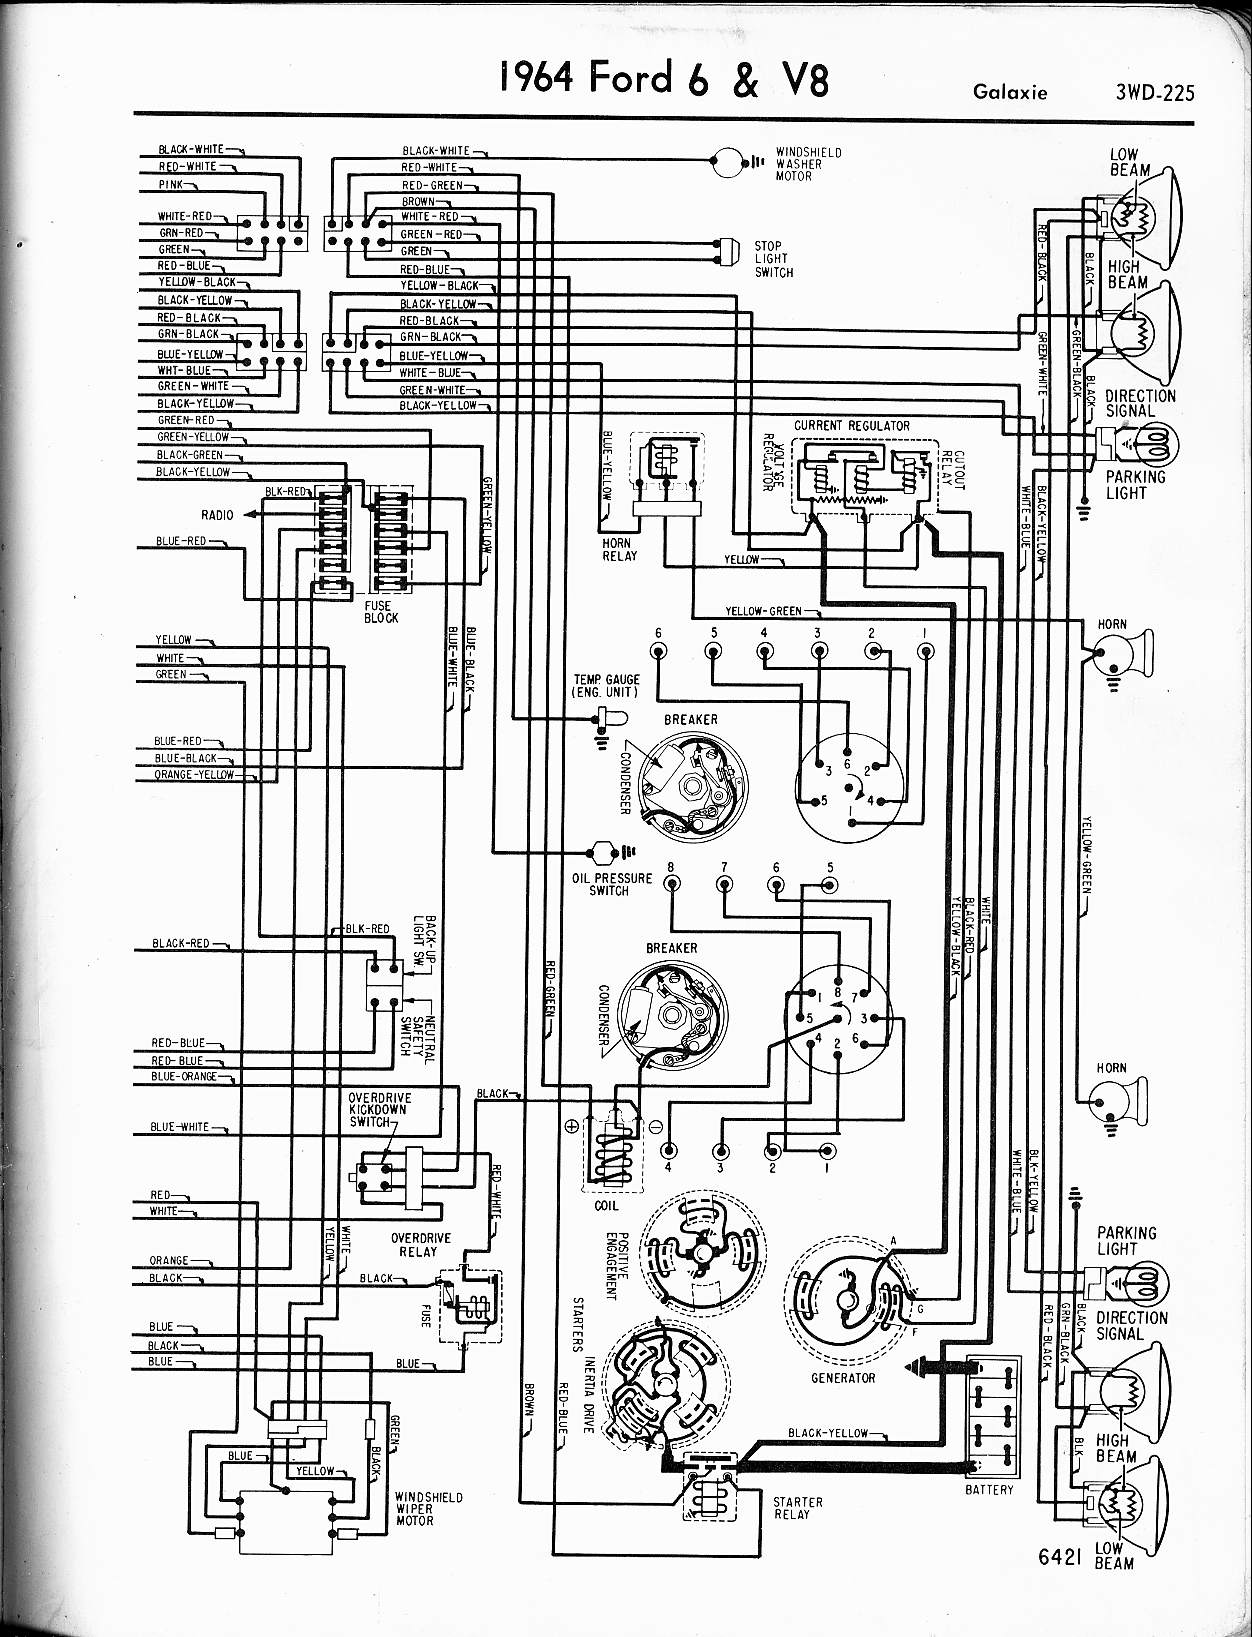 wiring schematic 1963 - Ford Muscle Forums : Ford Muscle ...